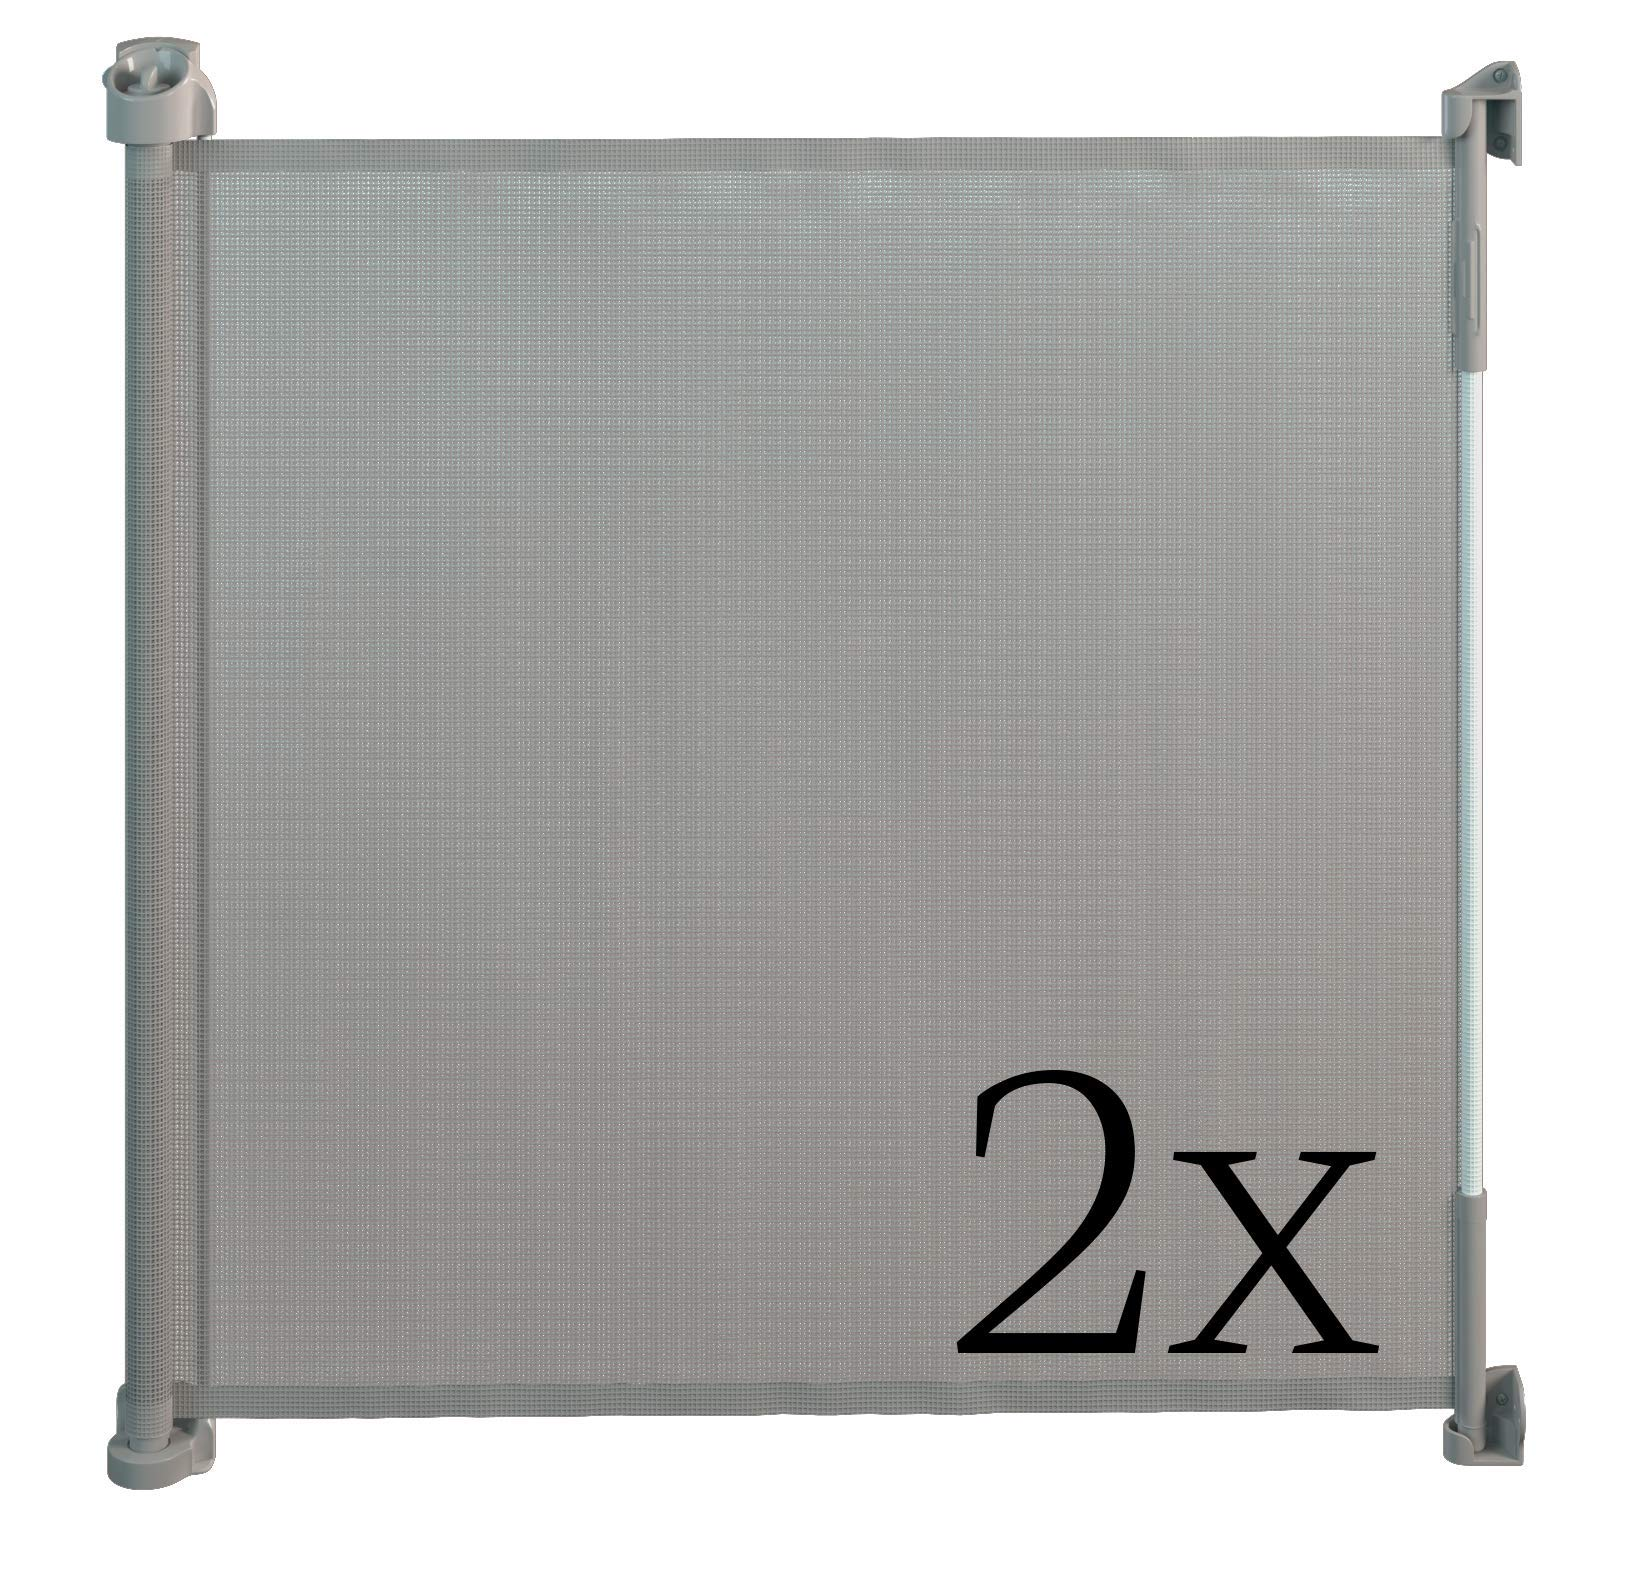 Gaterol Active Lite Gray Double Pack - Retractable Safety Gate - Super Safe 36.6'' Tall and Opens up to 55''